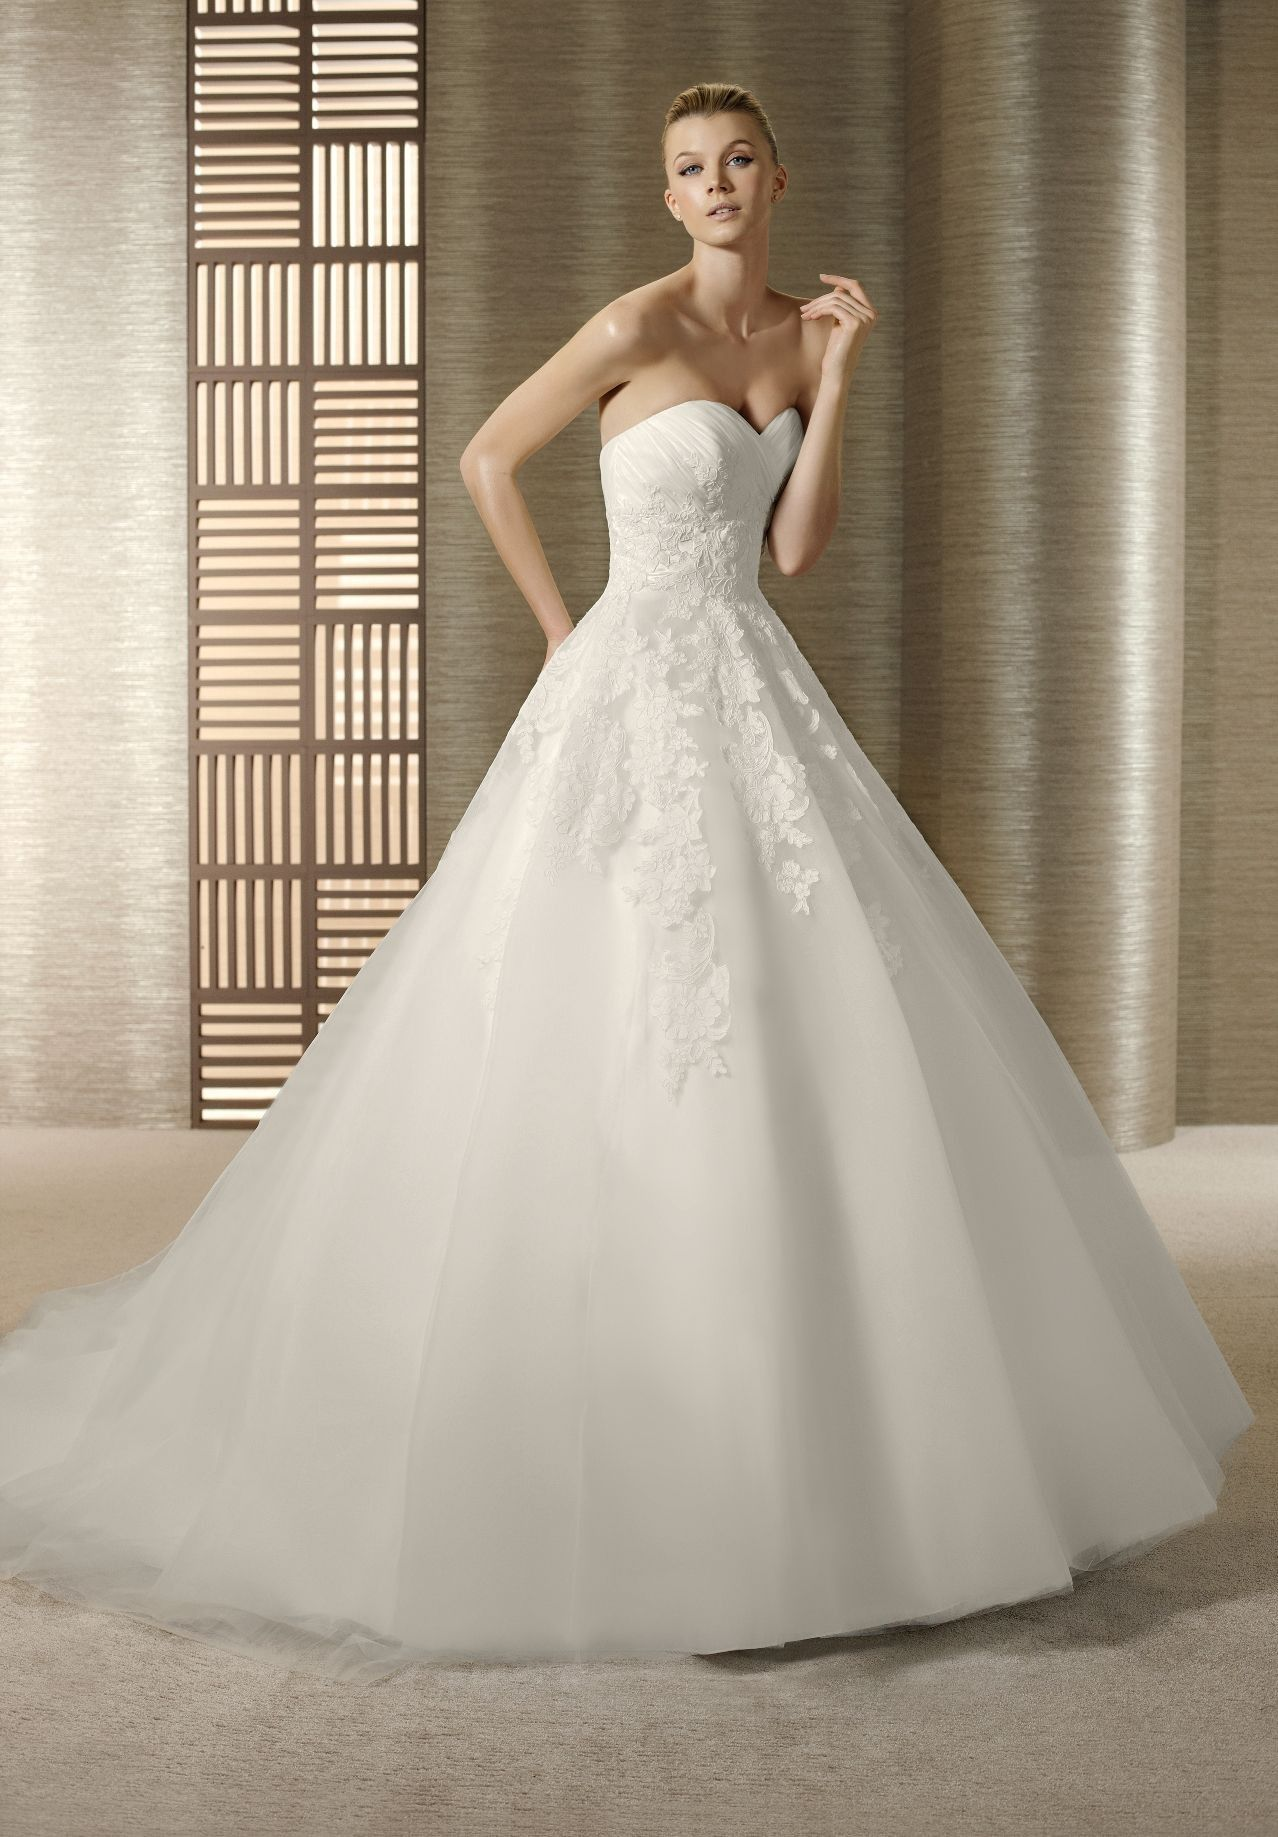 classy wedding dresses Organza Strapless Sweetheart Ball Gown Elegant Wedding Dress Bride